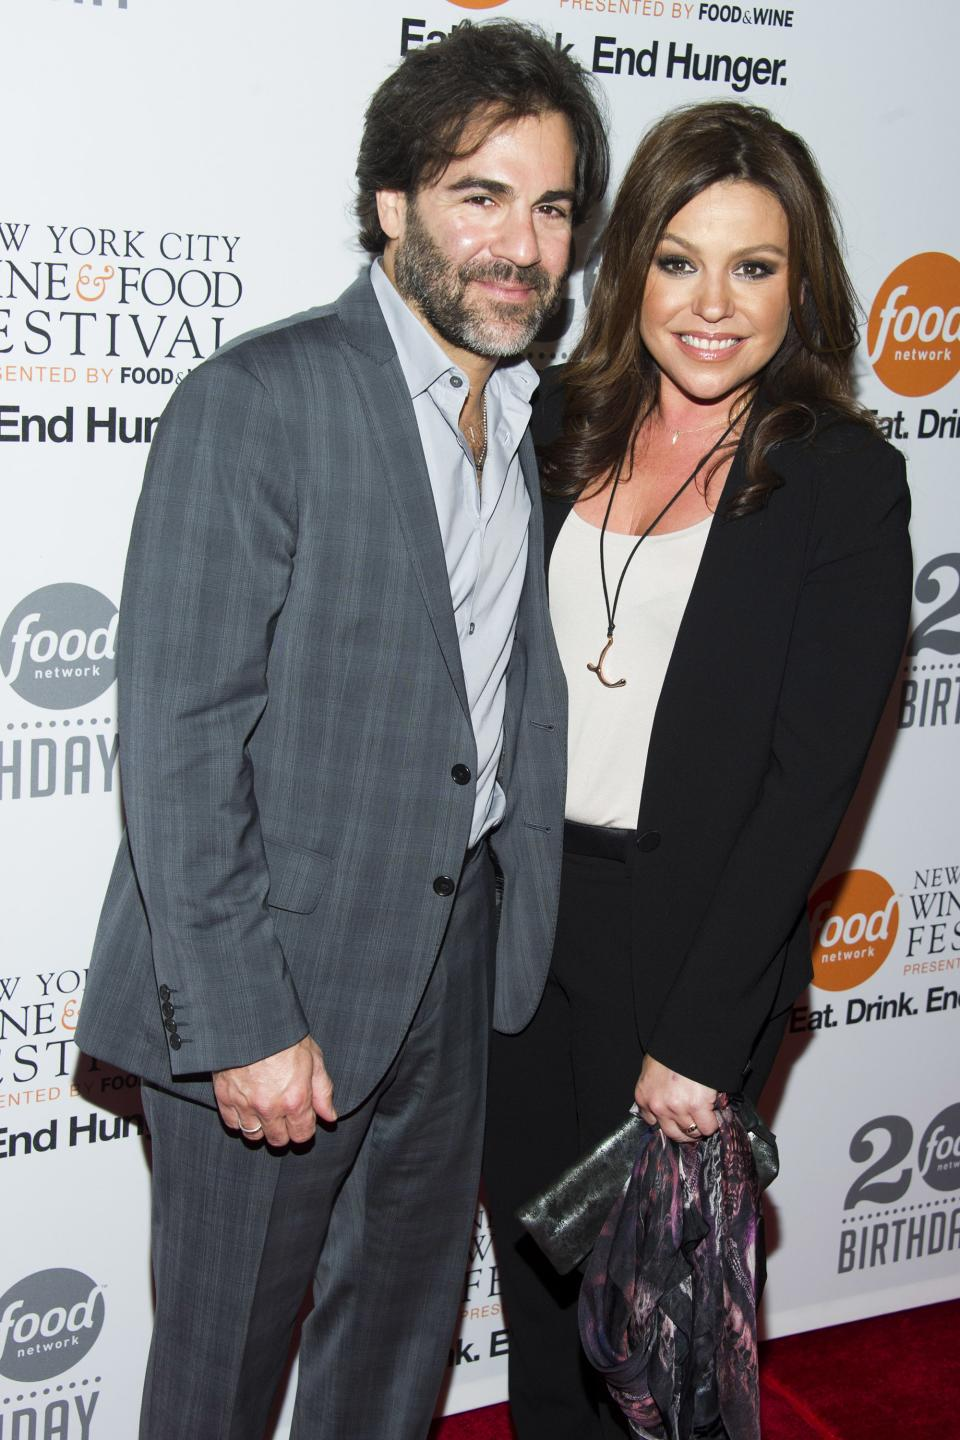 Rachael Ray and her husband John Cusimano attend the Food Network's 20th birthday party on Thursday, Oct. 17, 2013, in New York. (Photo by Charles Sykes/Invision/AP)